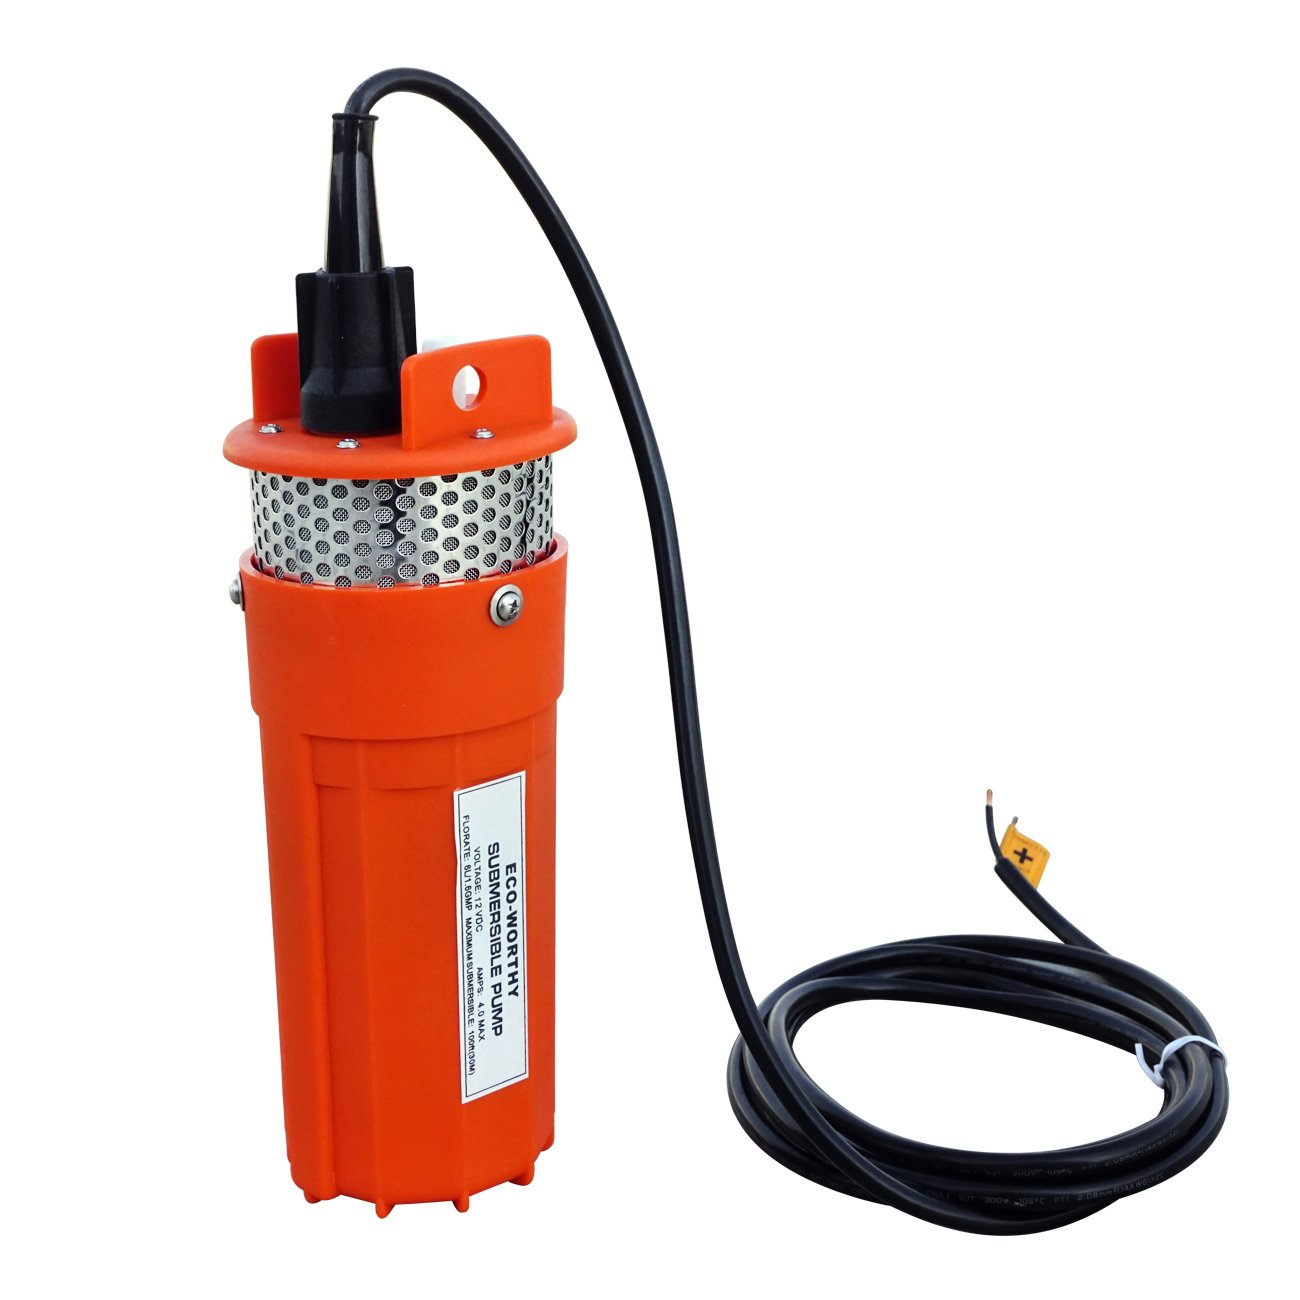 ECO-WORTHY DC 12V Solar Energy Submersible Deep Well Water Pump with 3m(10 ft) Cable